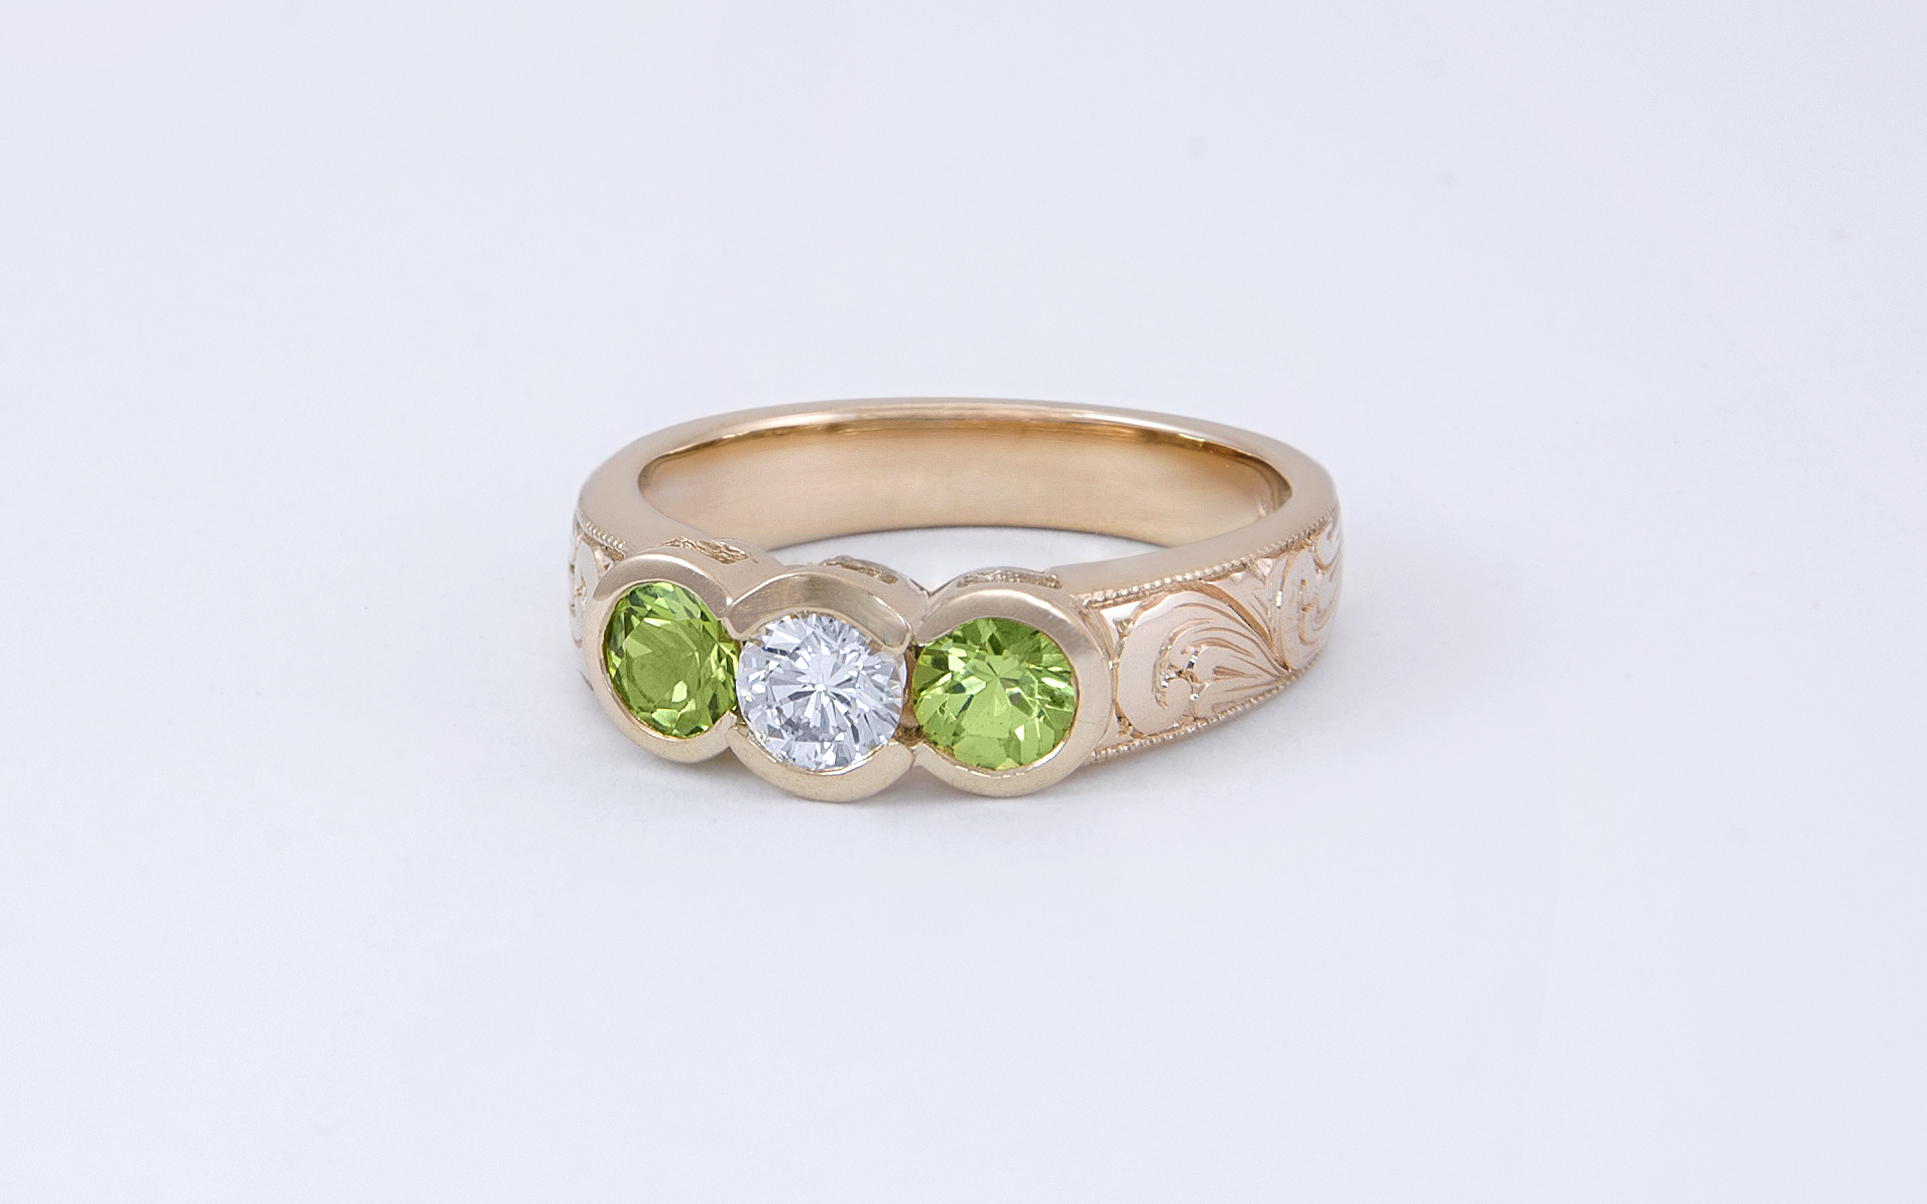 Hand Engraved Bezel Set Diamond & Peridot Ring